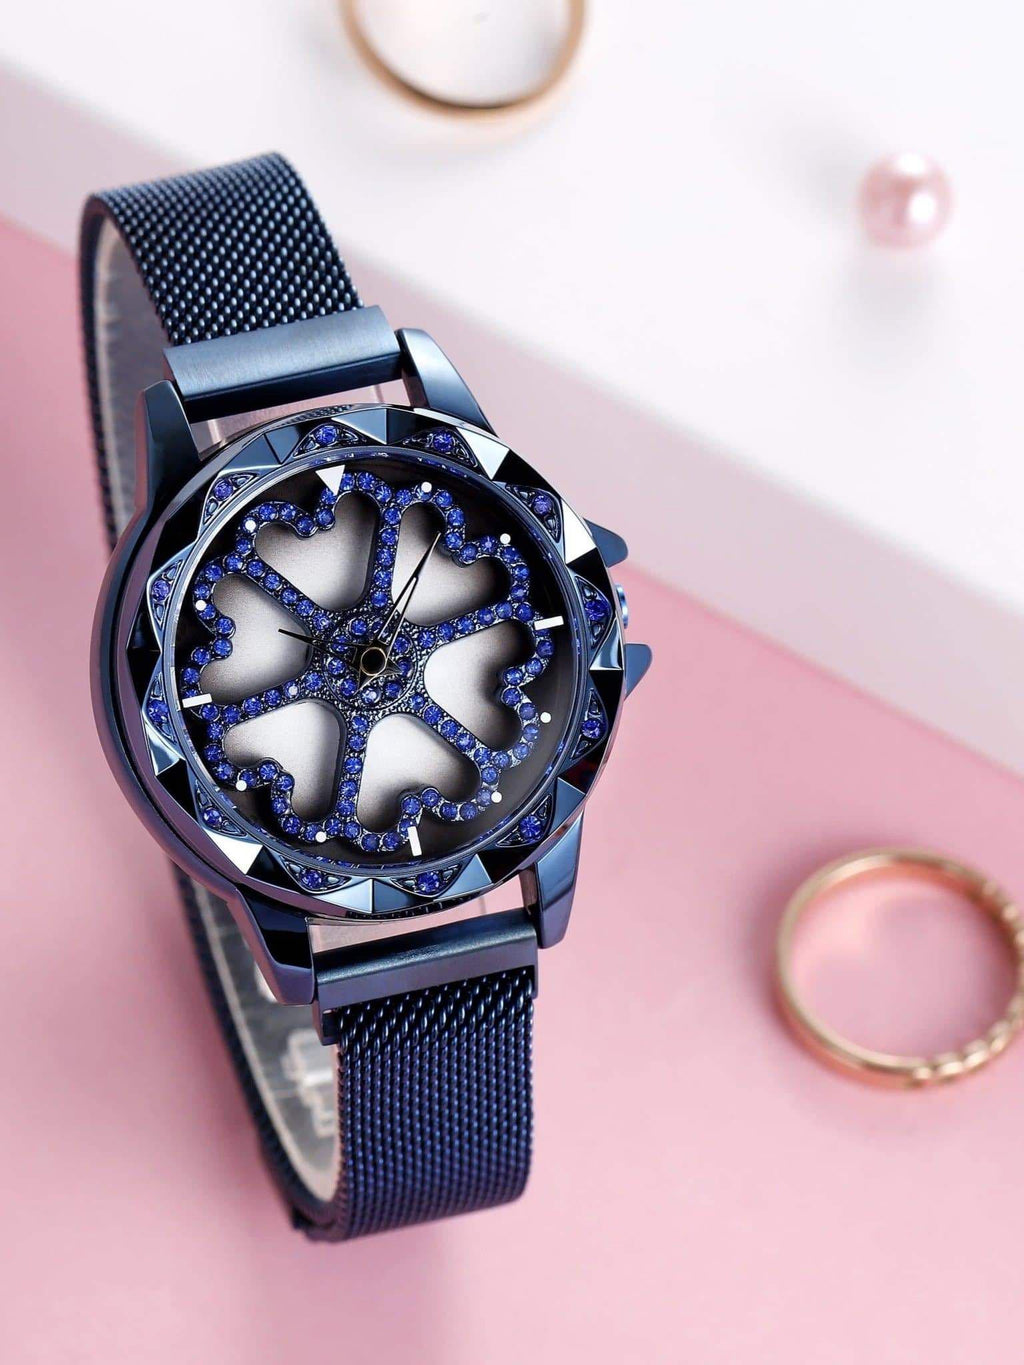 Women's Luxury Rotating Dial Watch - INS | Online Fashion Free Shipping Clothing, Dresses, Tops, Shoes